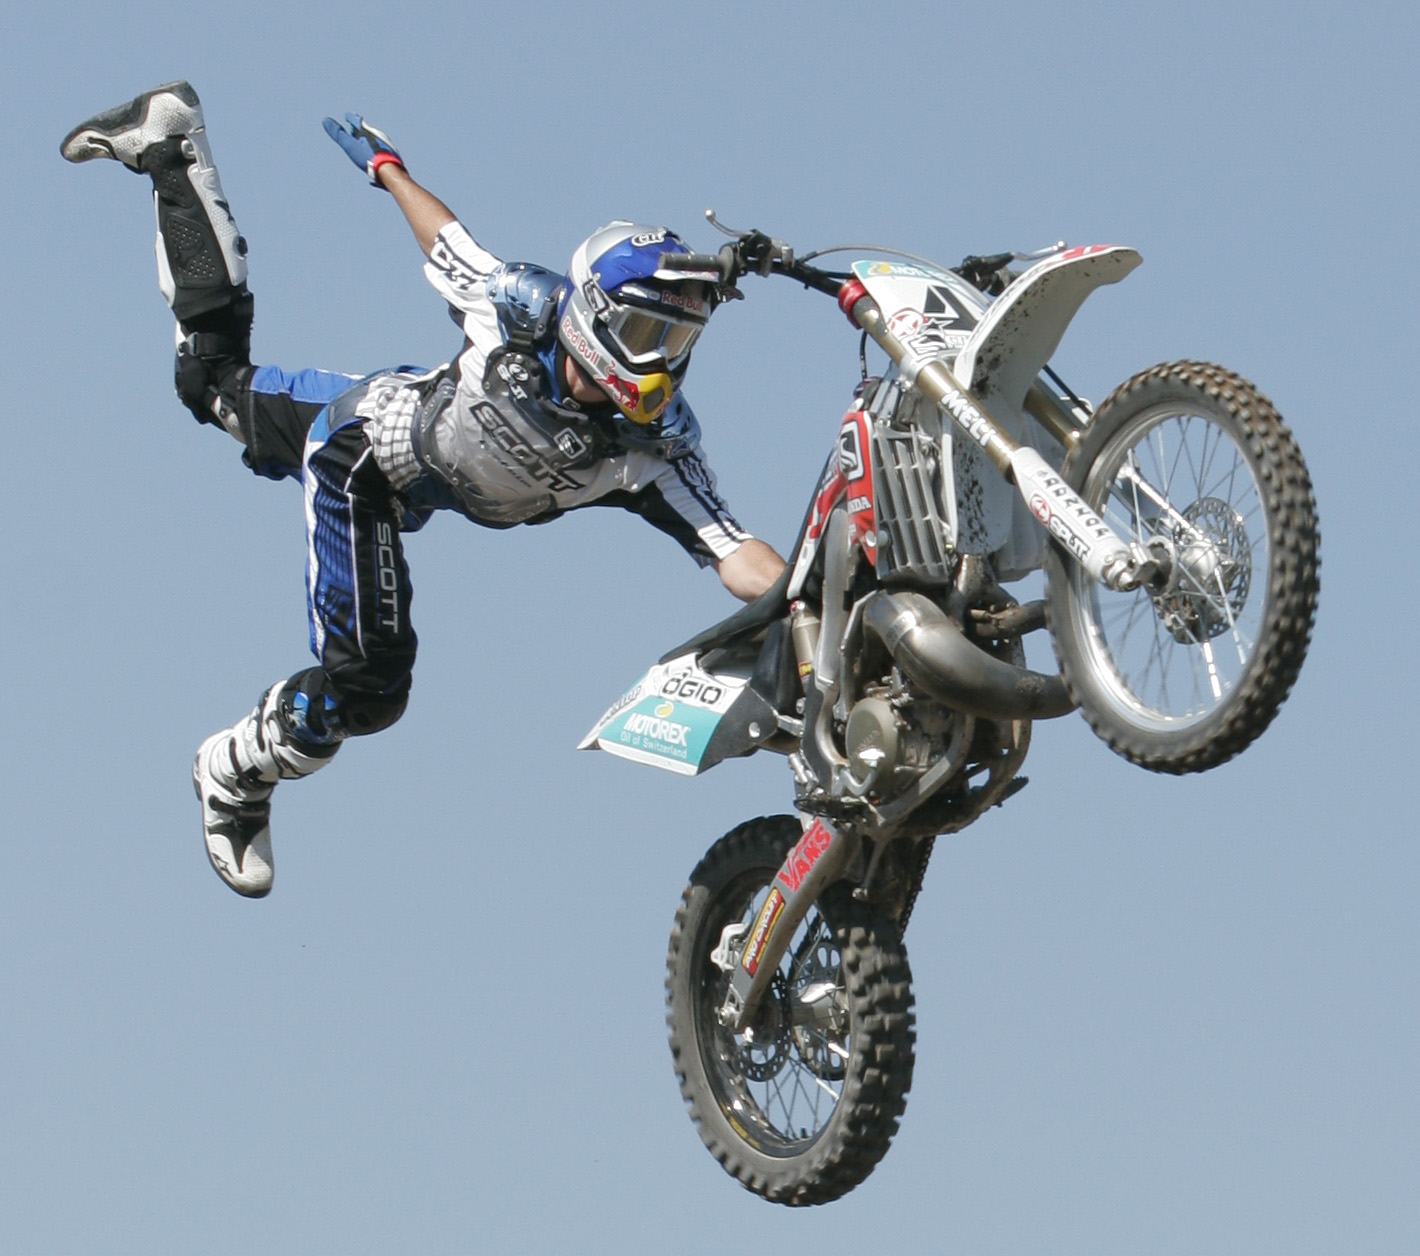 Extreme Sports Wallpapers